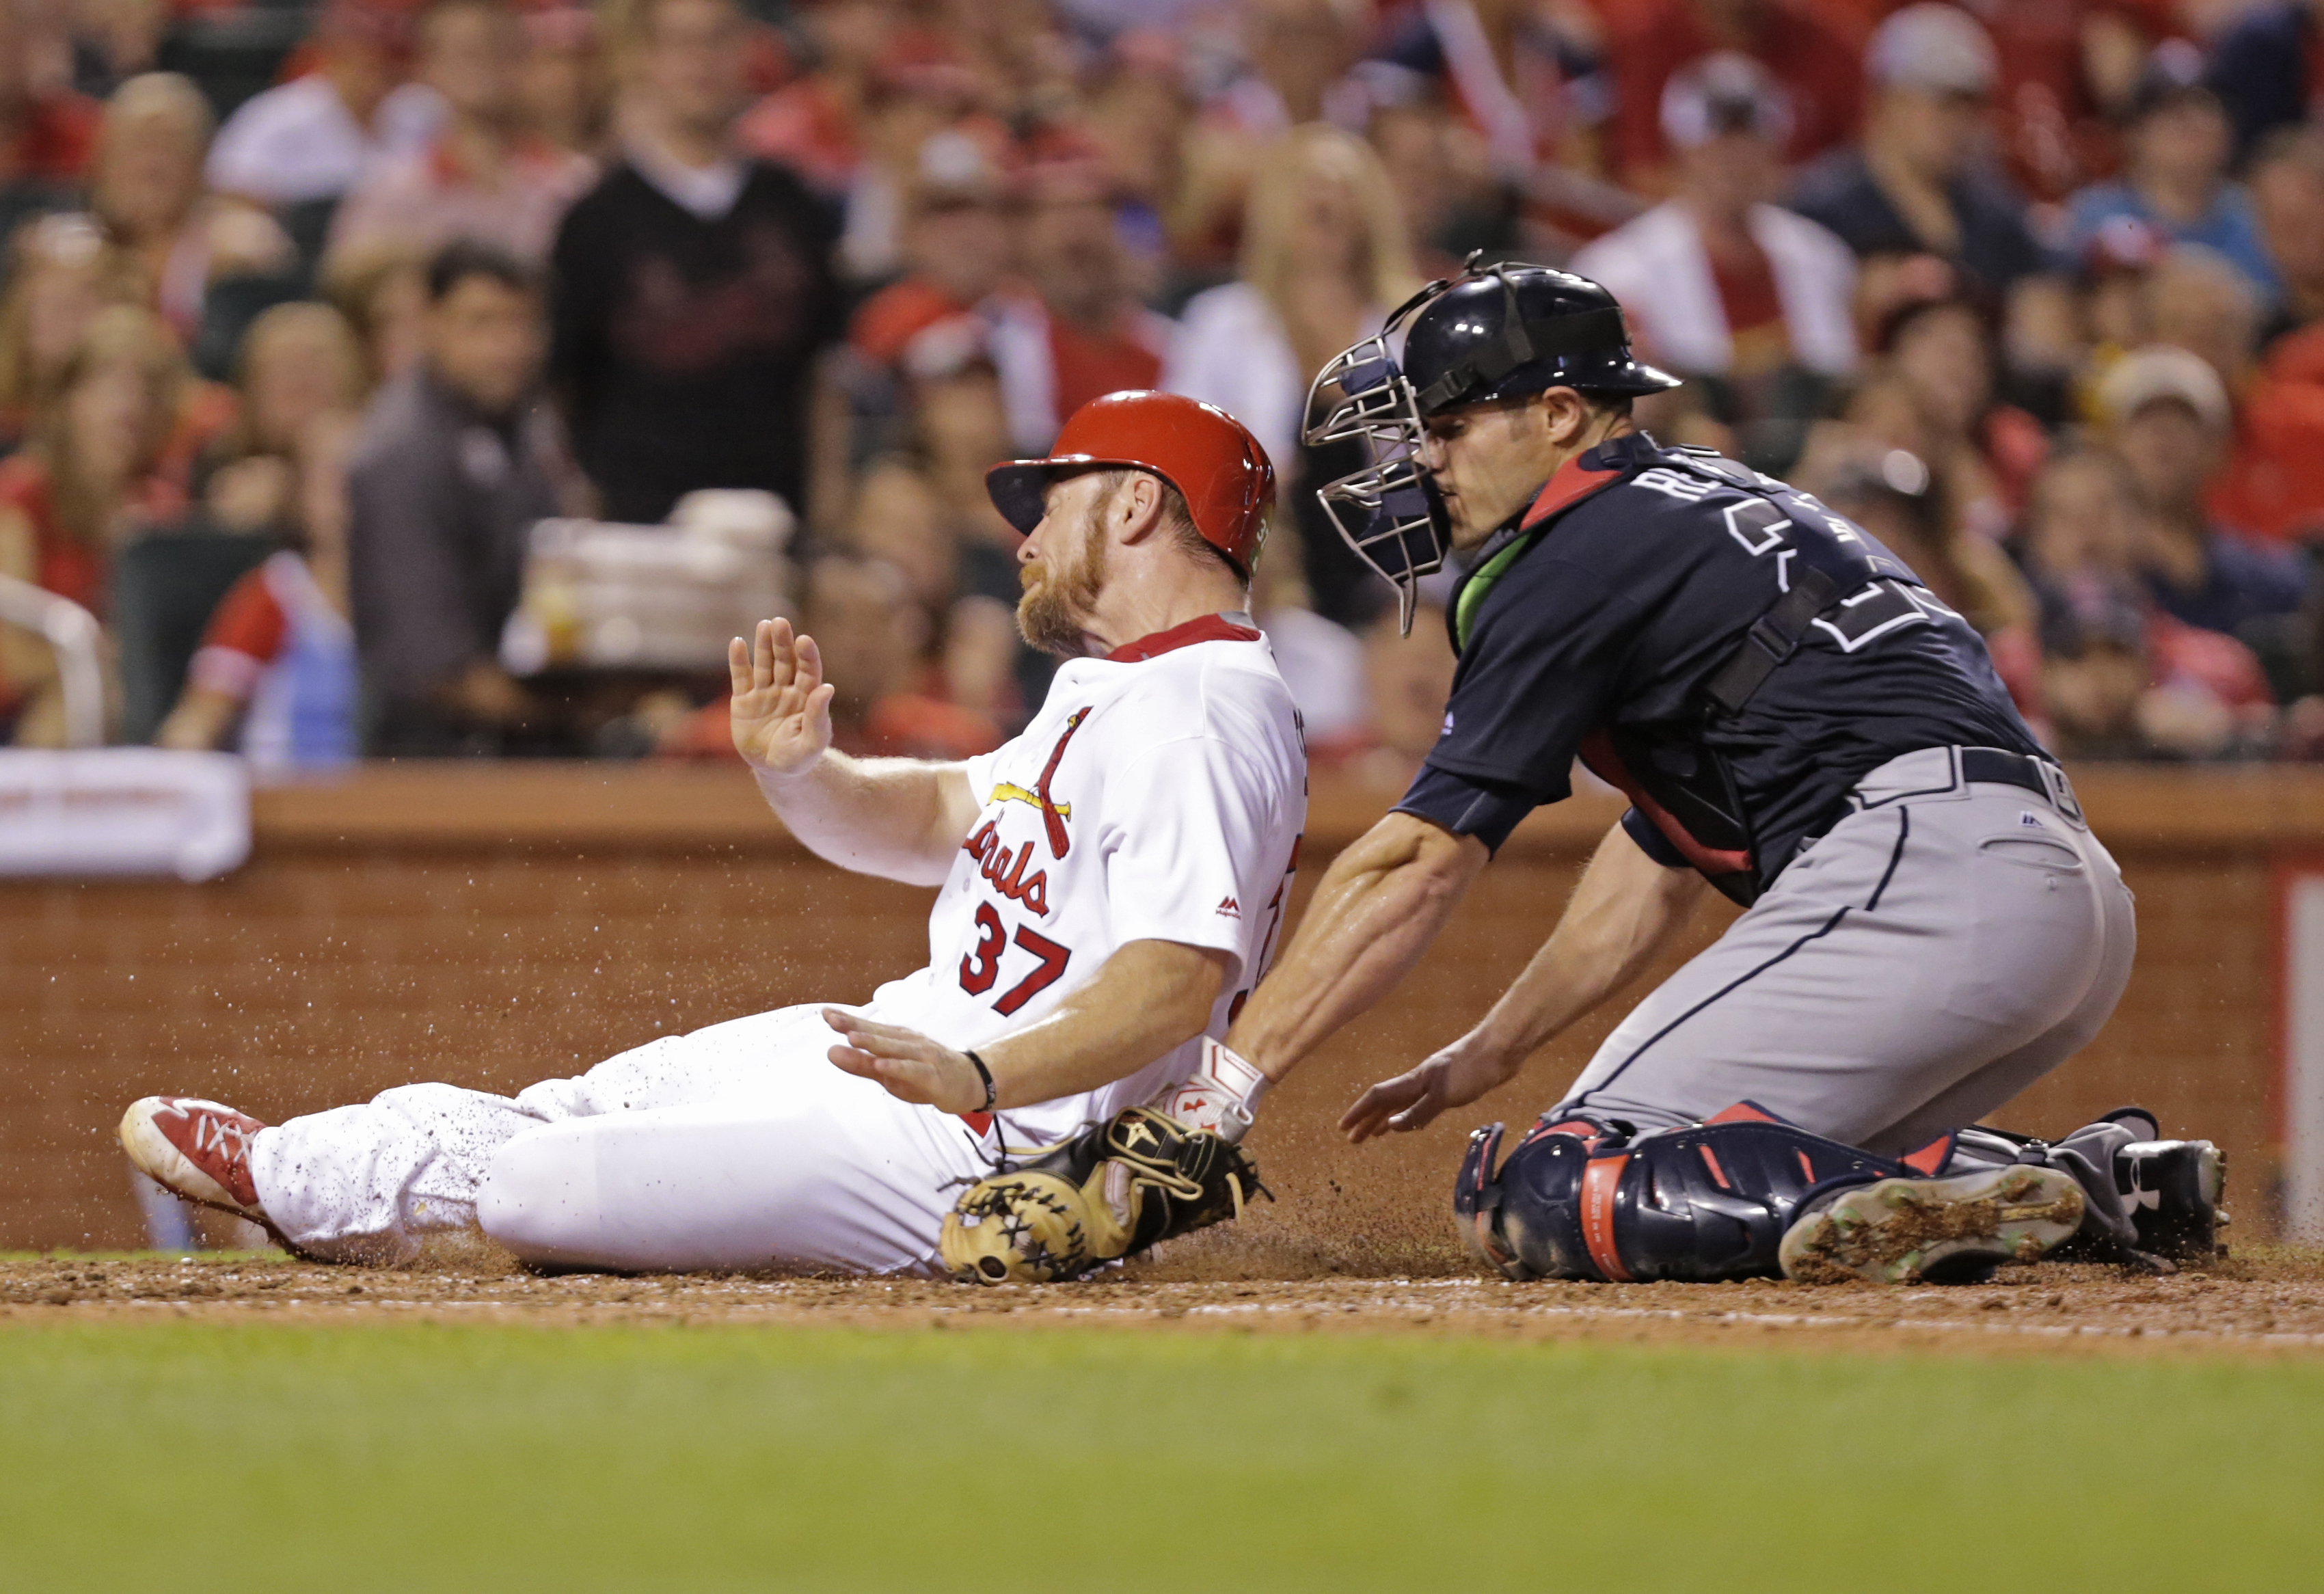 St. Louis Cardinals' Brandon Moss is tagged out at home by Atlanta Braves catcher Anthony Recker during the sixth inning of a baseball game, Friday, Aug. 5, 2016, in St. Louis. (AP Photo/Tom Gannam)